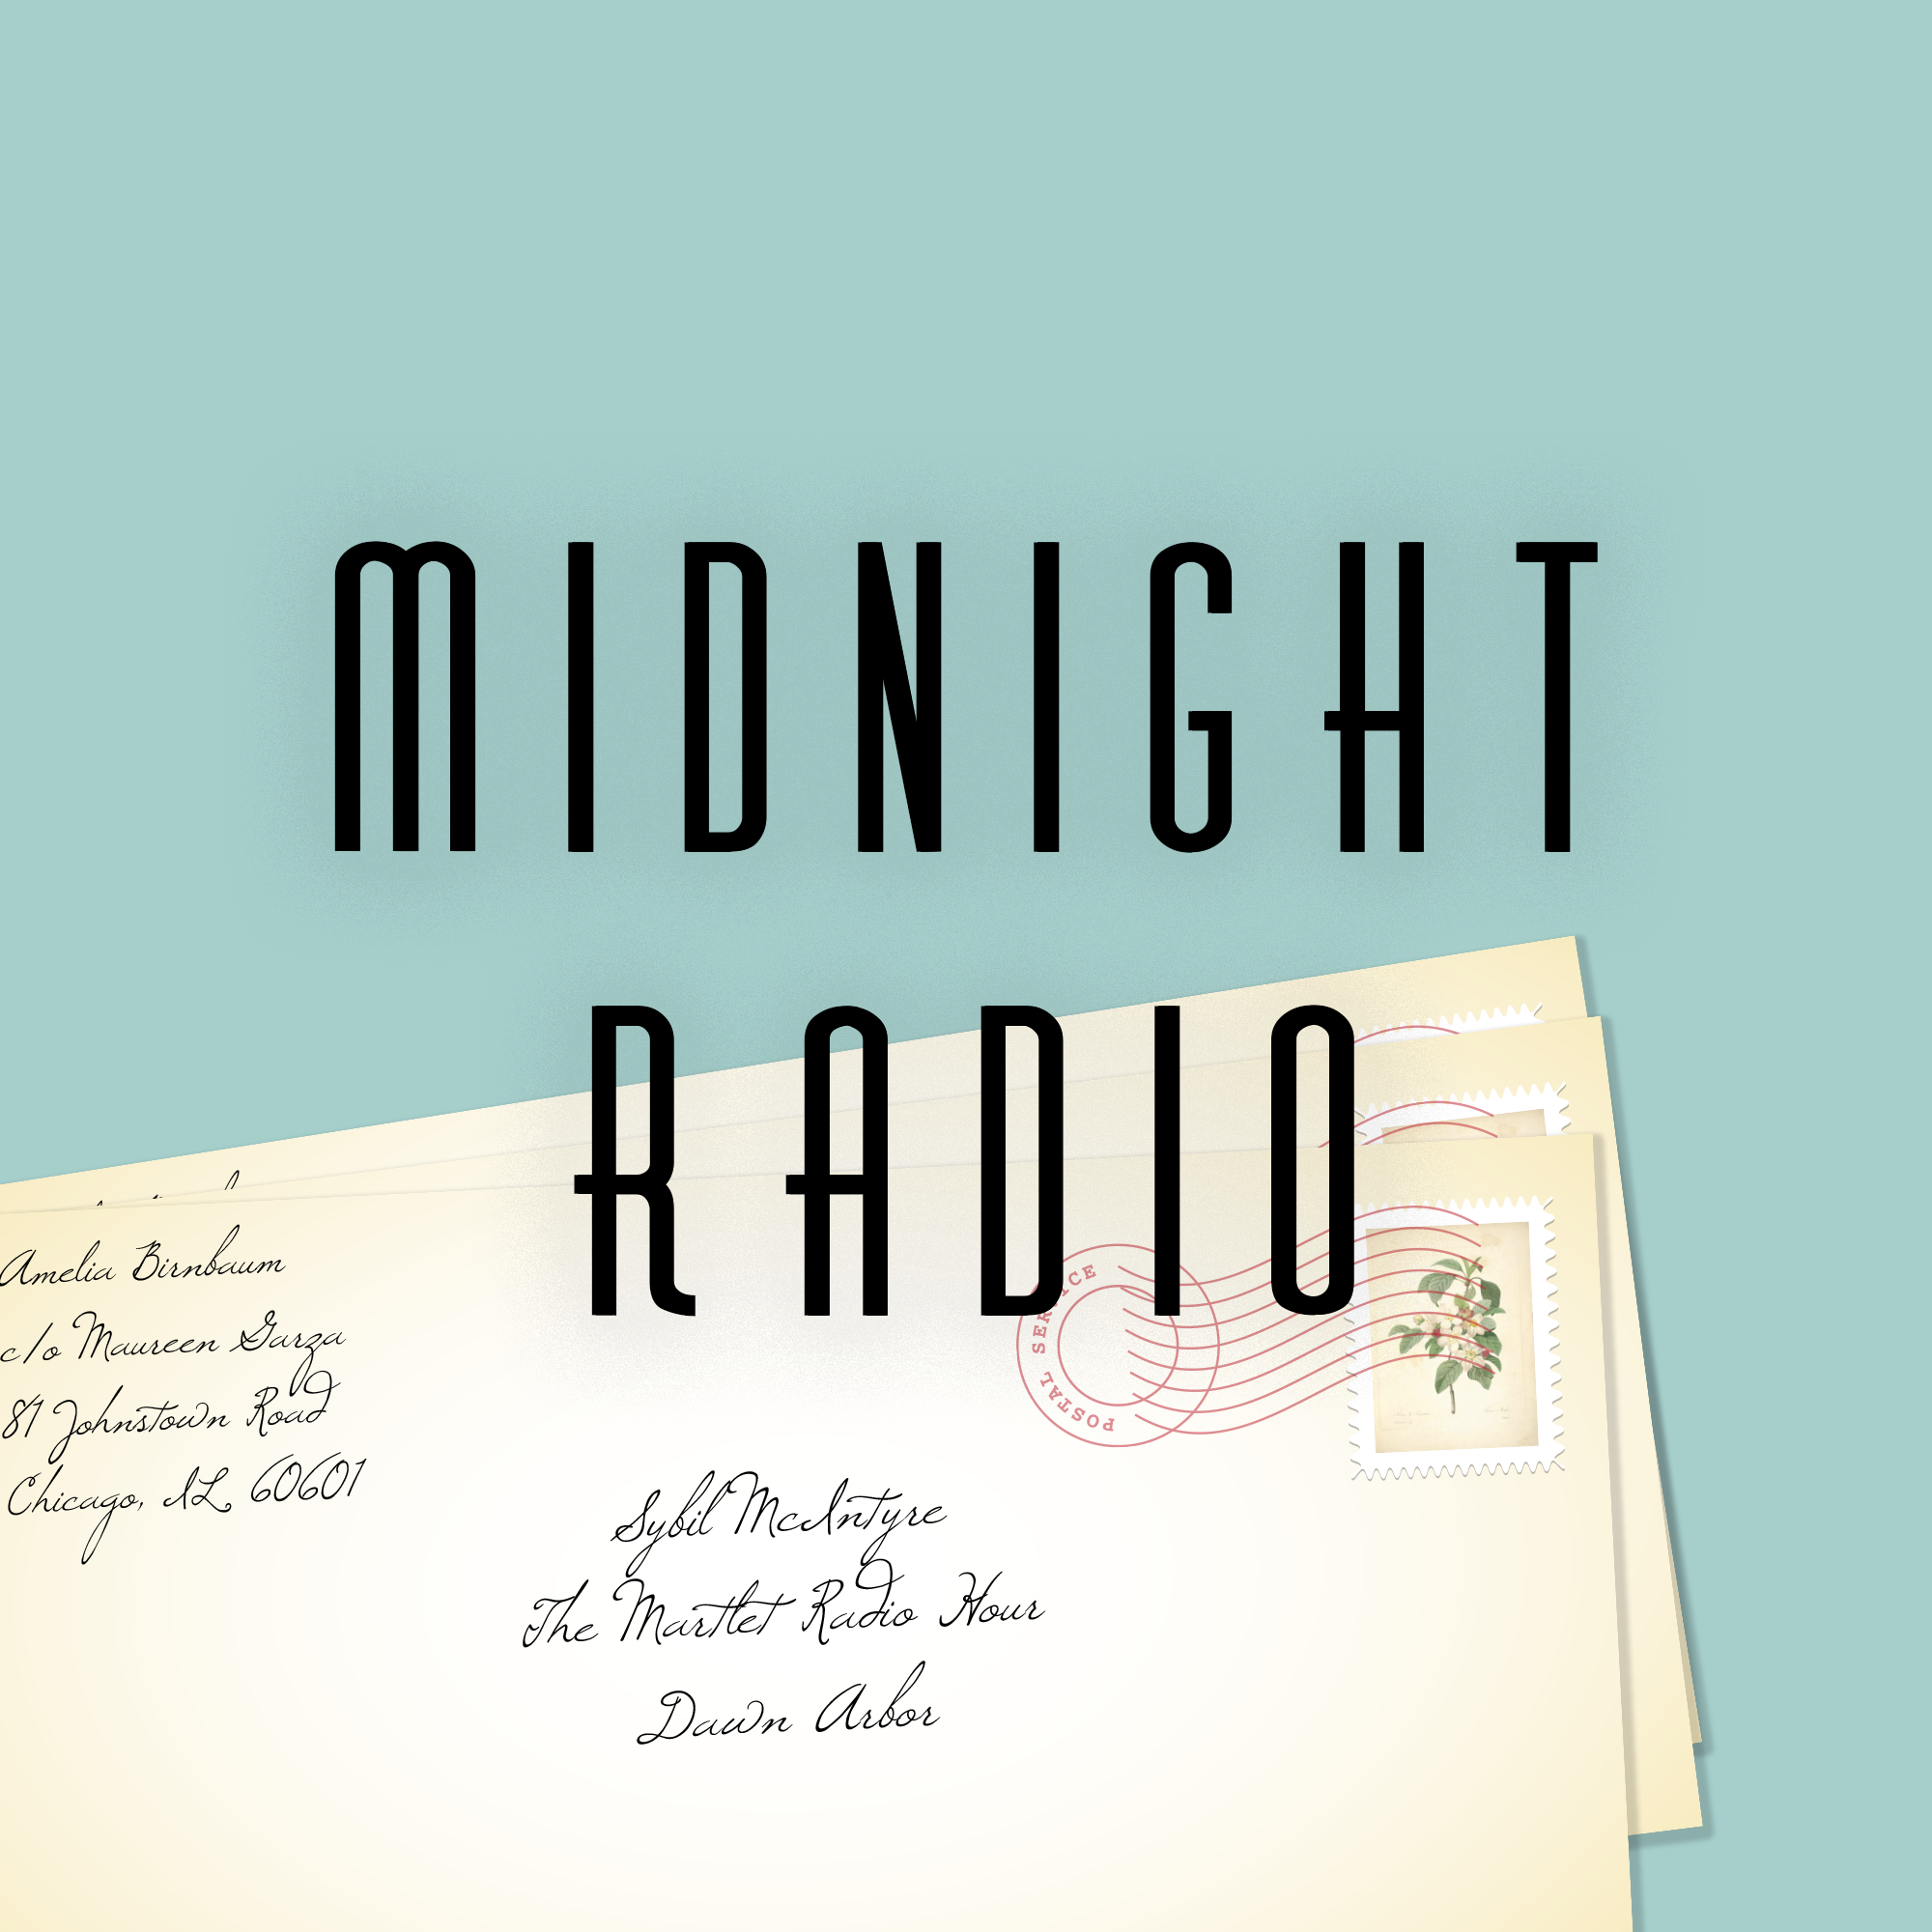 Midnight Radio logo by Em Broude